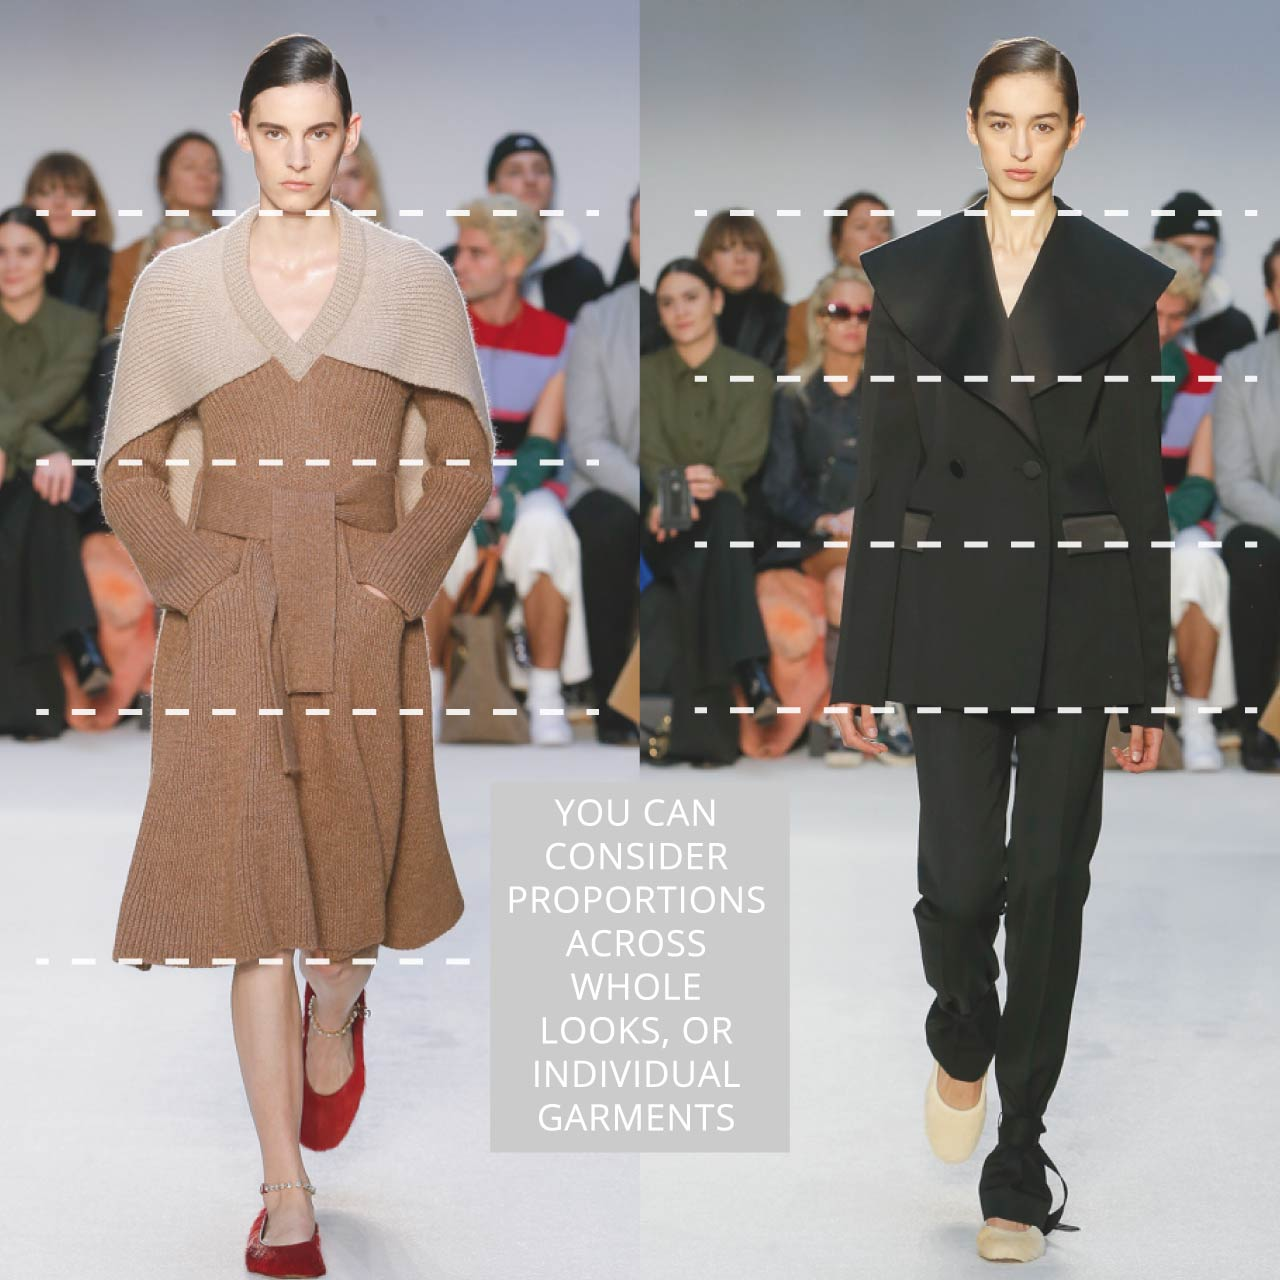 The Rule of Thirds Applied to JW Anderson | The Cutting Class. Consider proportions across whole looks or individual garments.